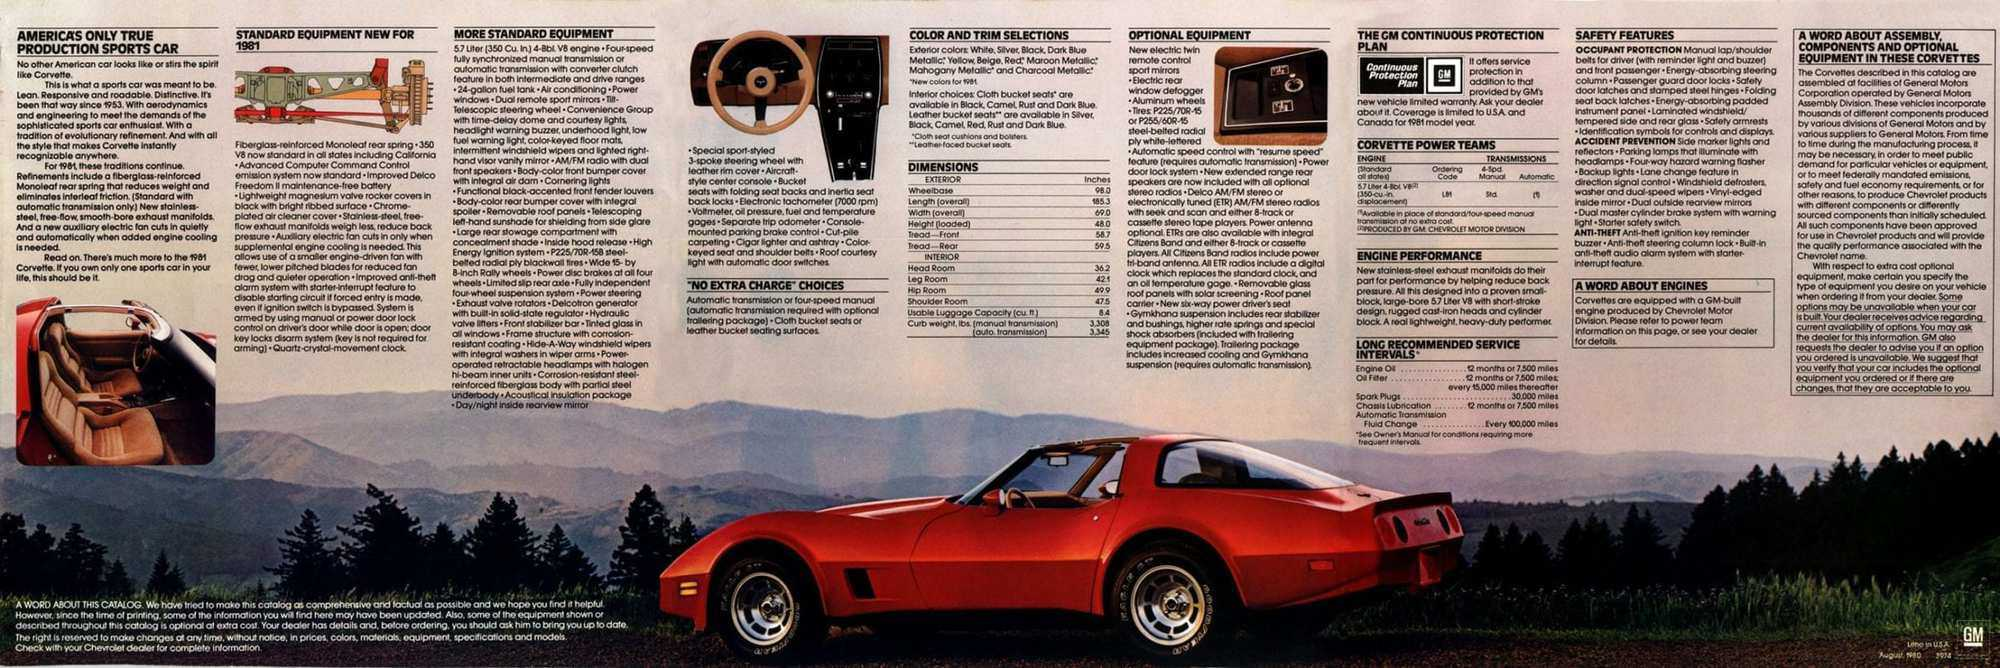 1981 Chevrolet Corvette Options